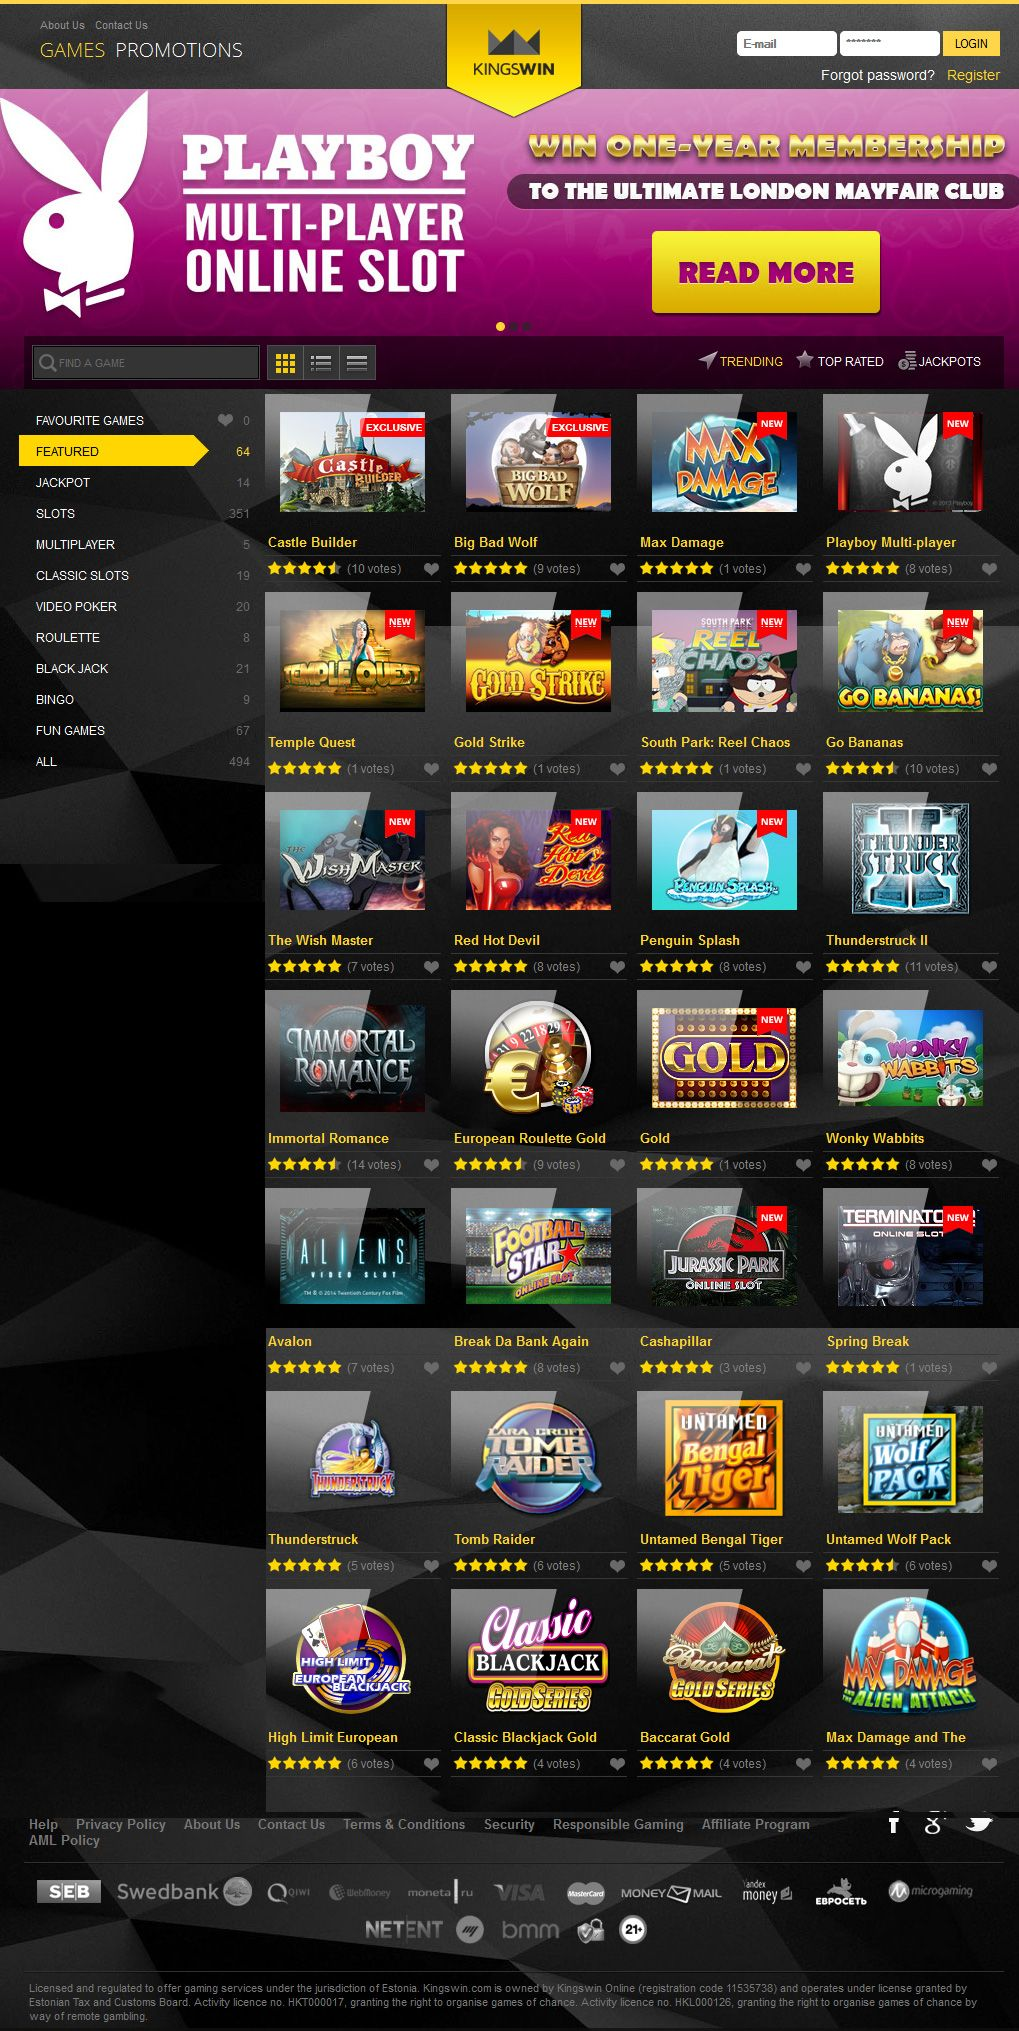 KingsWin Casino Review & Ratings - AskGamblers